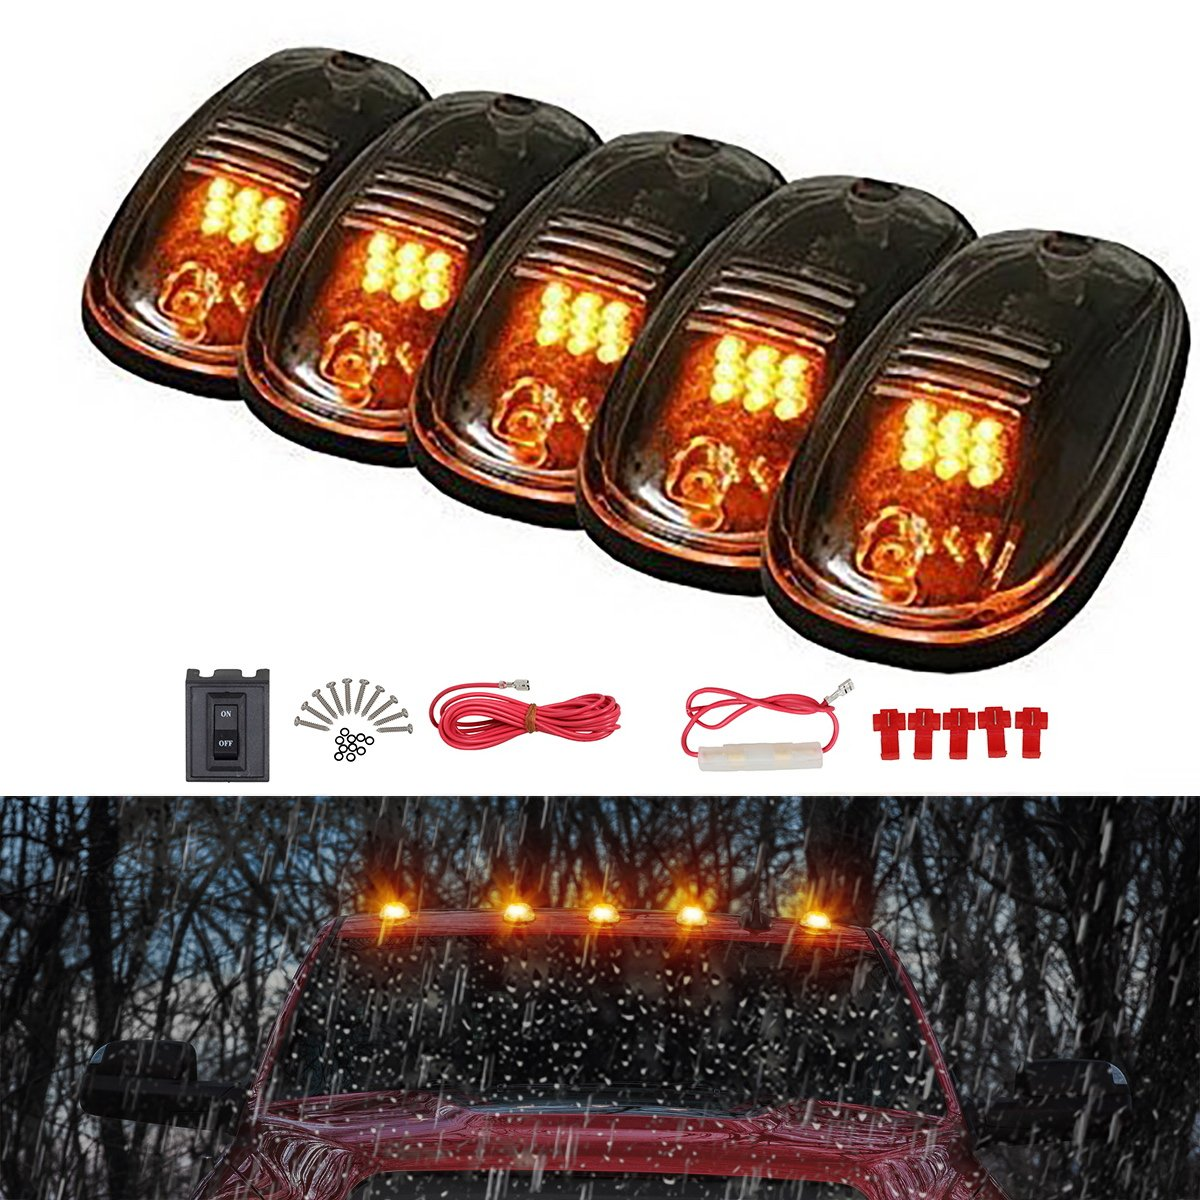 Partsam Cab Marker Lights 5pcs Amber Top Clearance Roof Lamp Ca Gps Wiring Diagram Running With Pack For 2003 2018 Dodge Ram 1500 2500 3500 4500 5500 Pickup